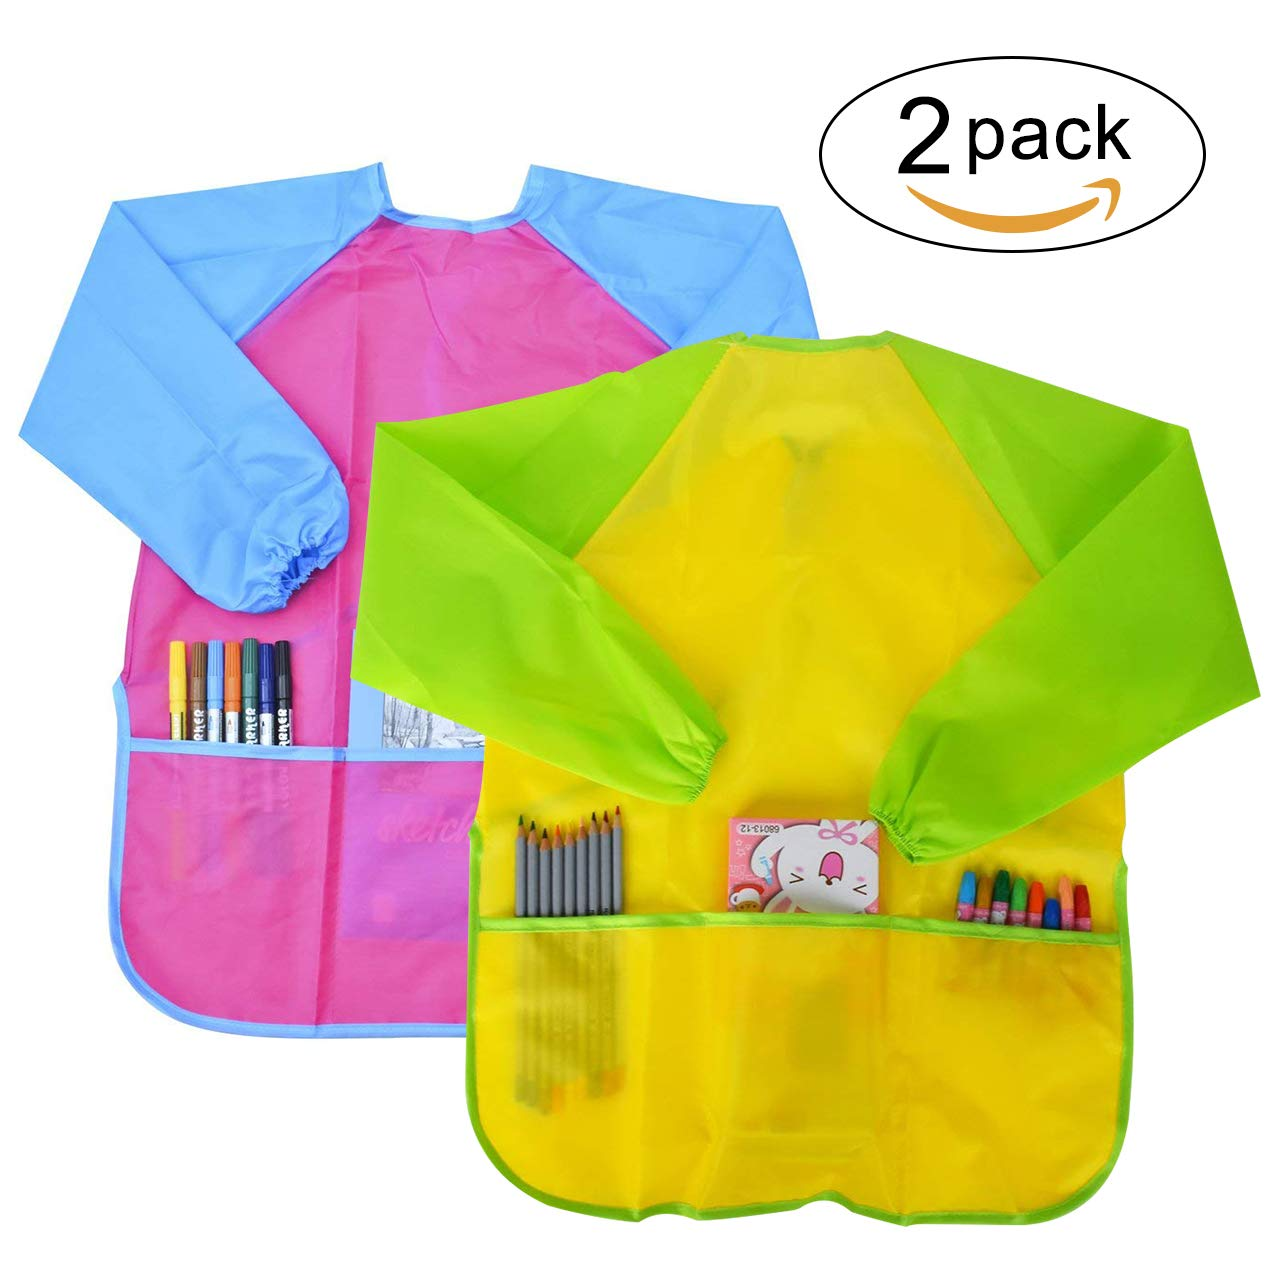 SUHOO Pack of 2 Children's Art Aprons, Kids Art Smock Waterproof Artist Painting Aprons Long Sleeve with 3 Roomy Pockets for Age 2-6 (Paints and Brushes not Included)